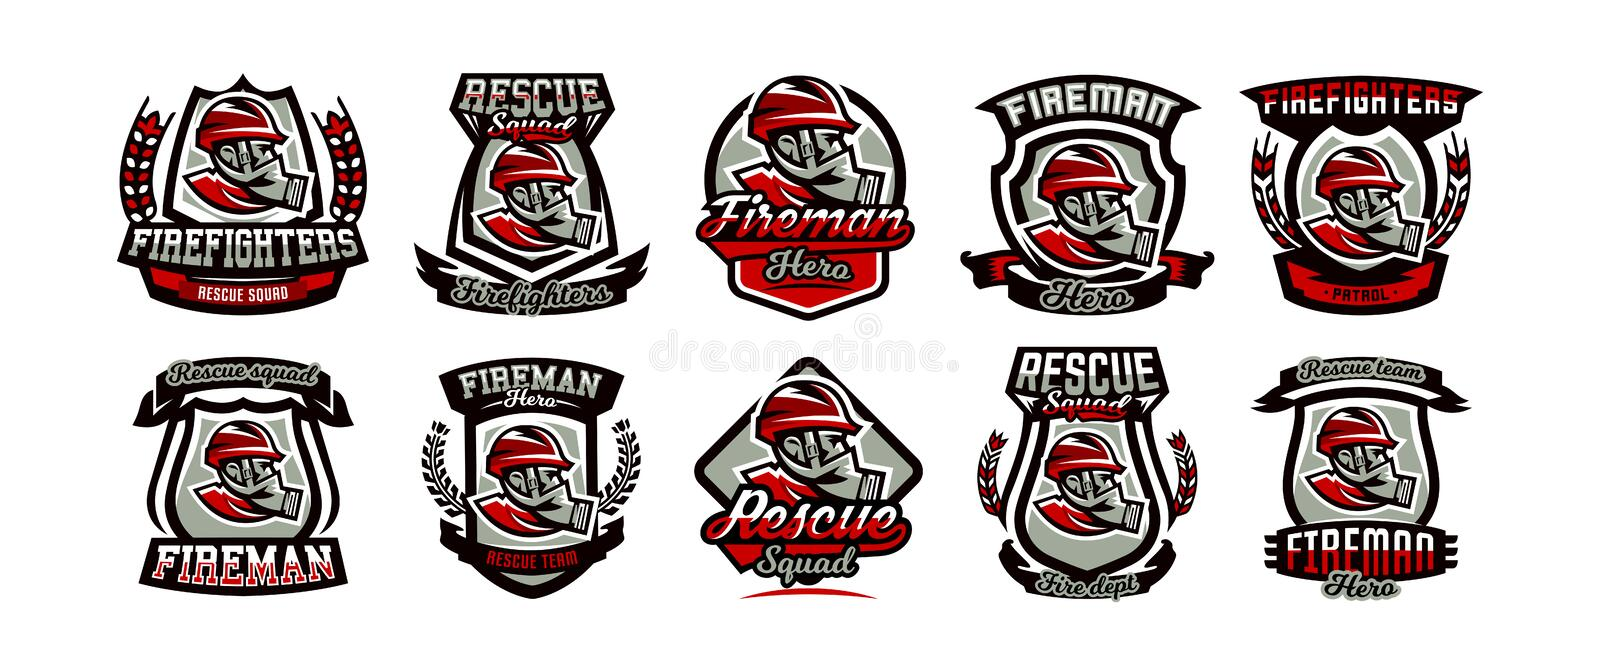 Collection of colorful emblems, logo, badge, firefighter in a gas mask, rescue squad, vector illustration. royalty free illustration